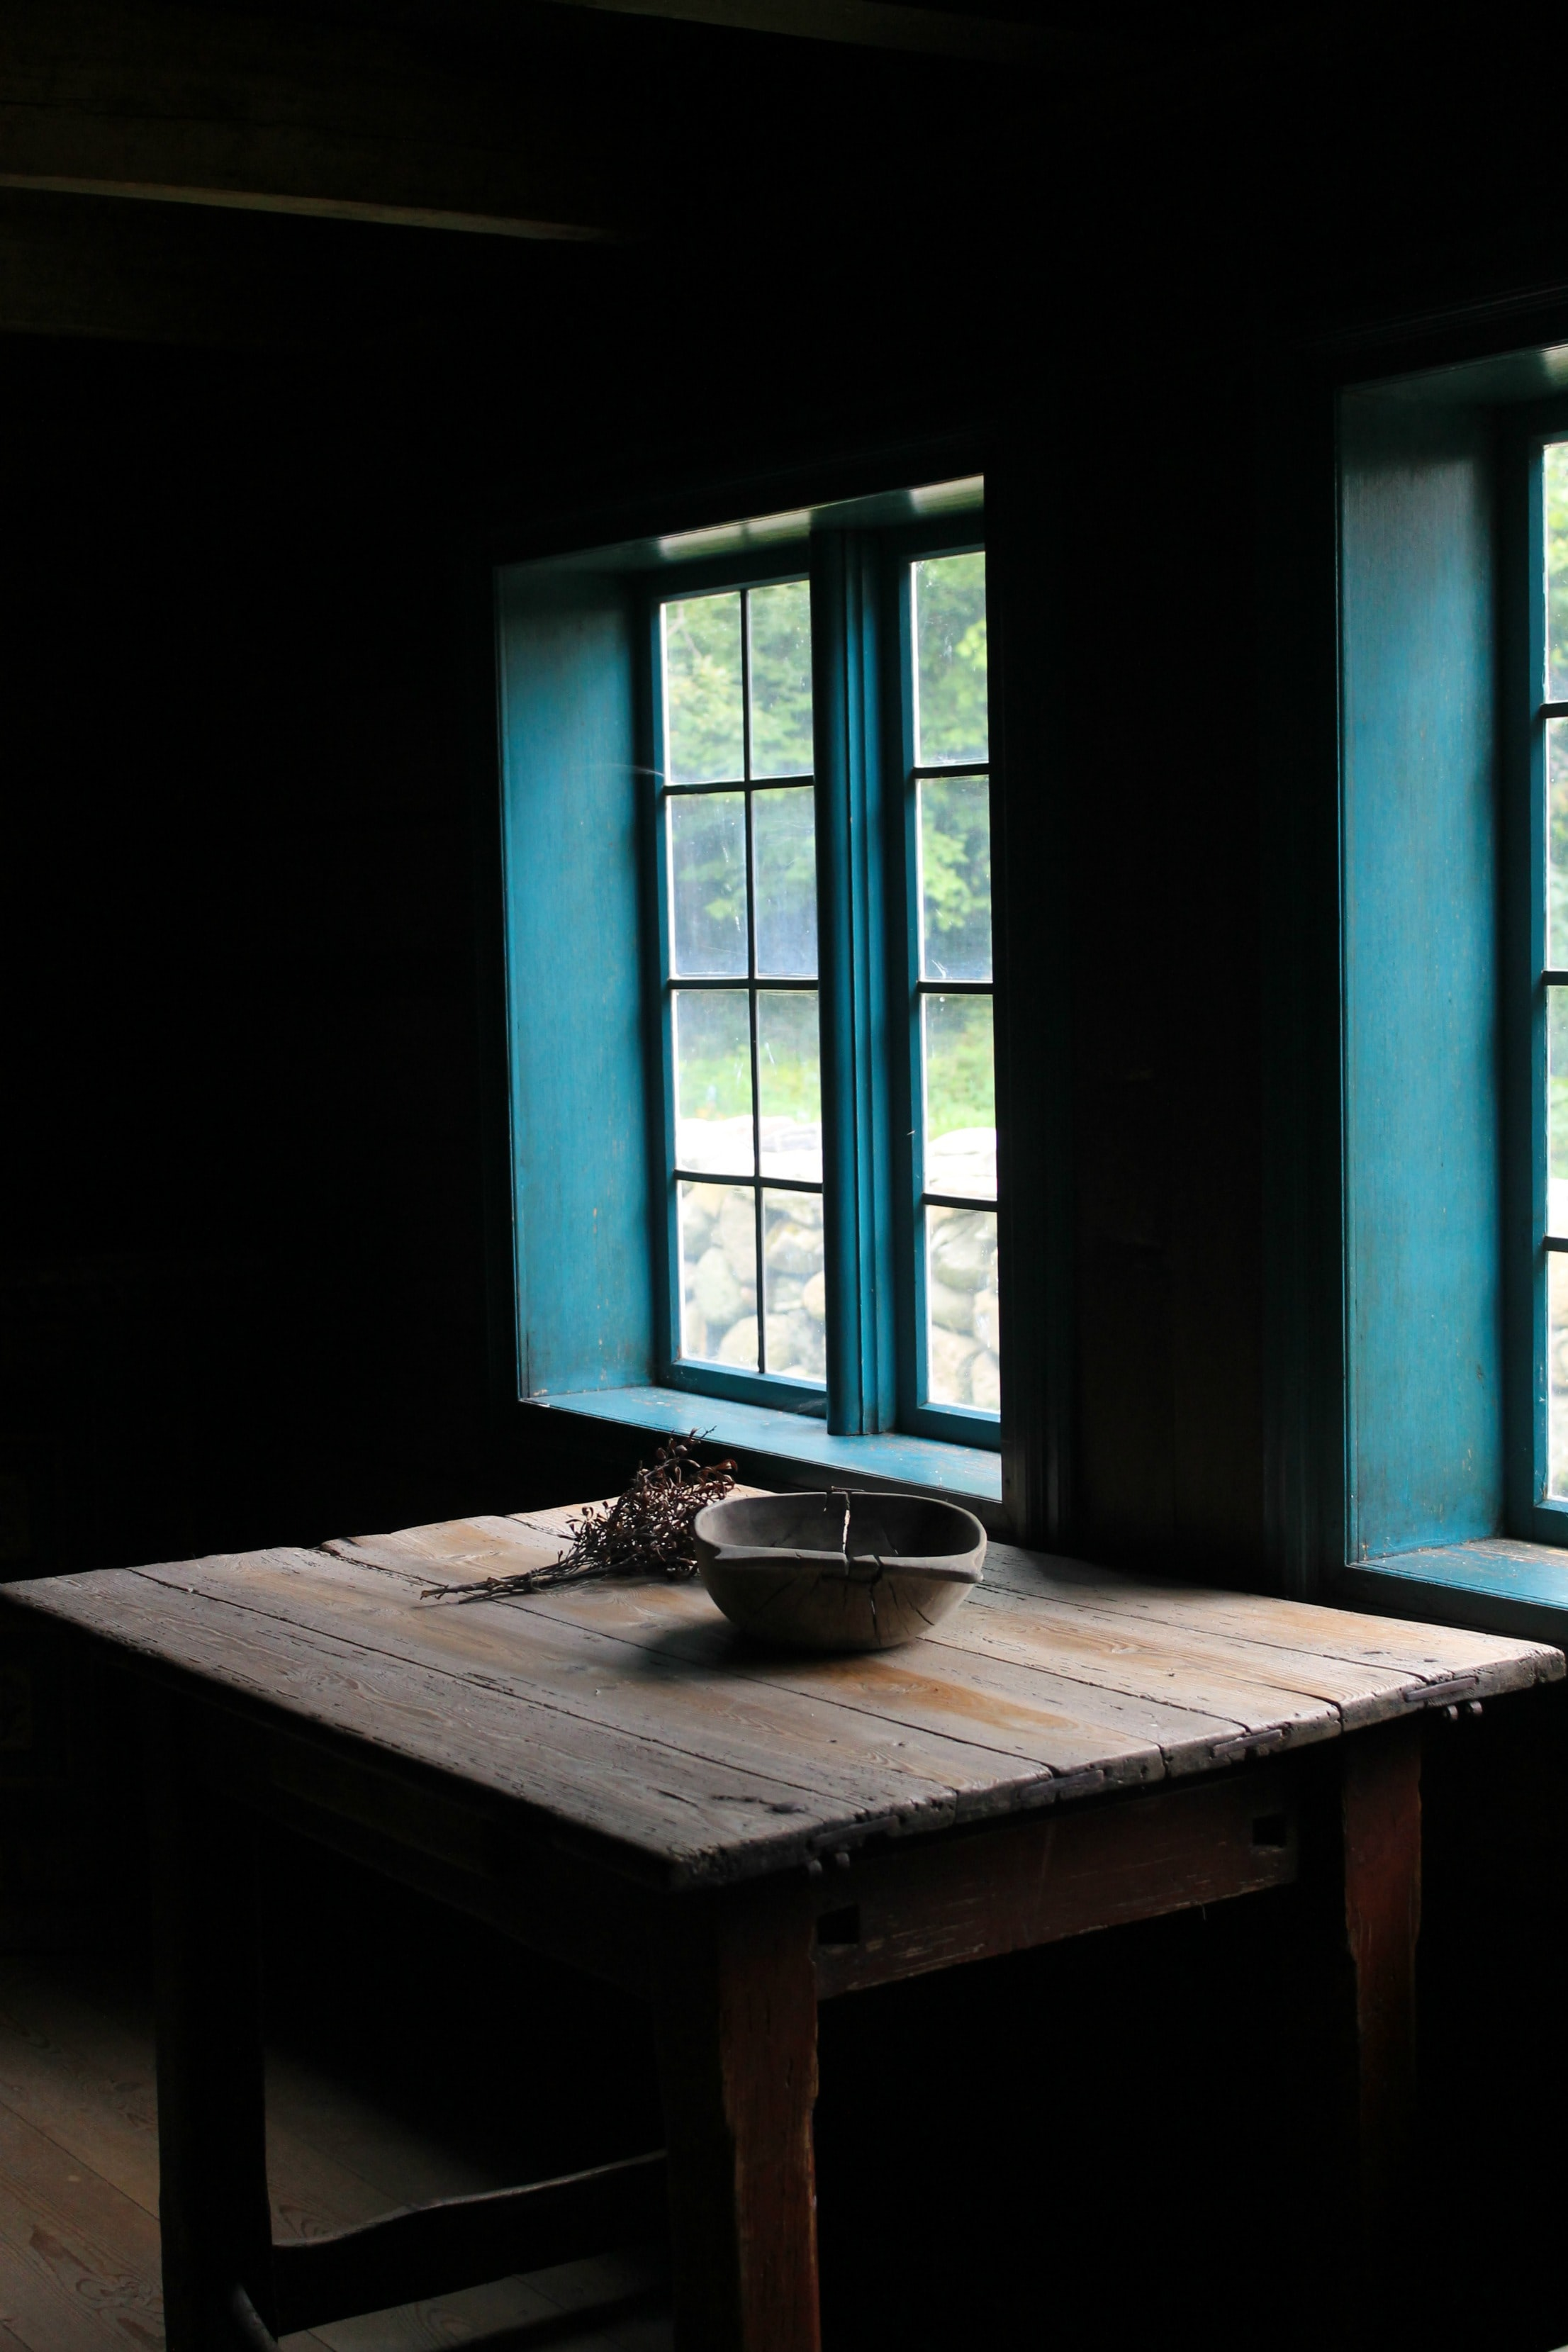 A wooden table with a bowl on it near a window in Folkemuseet